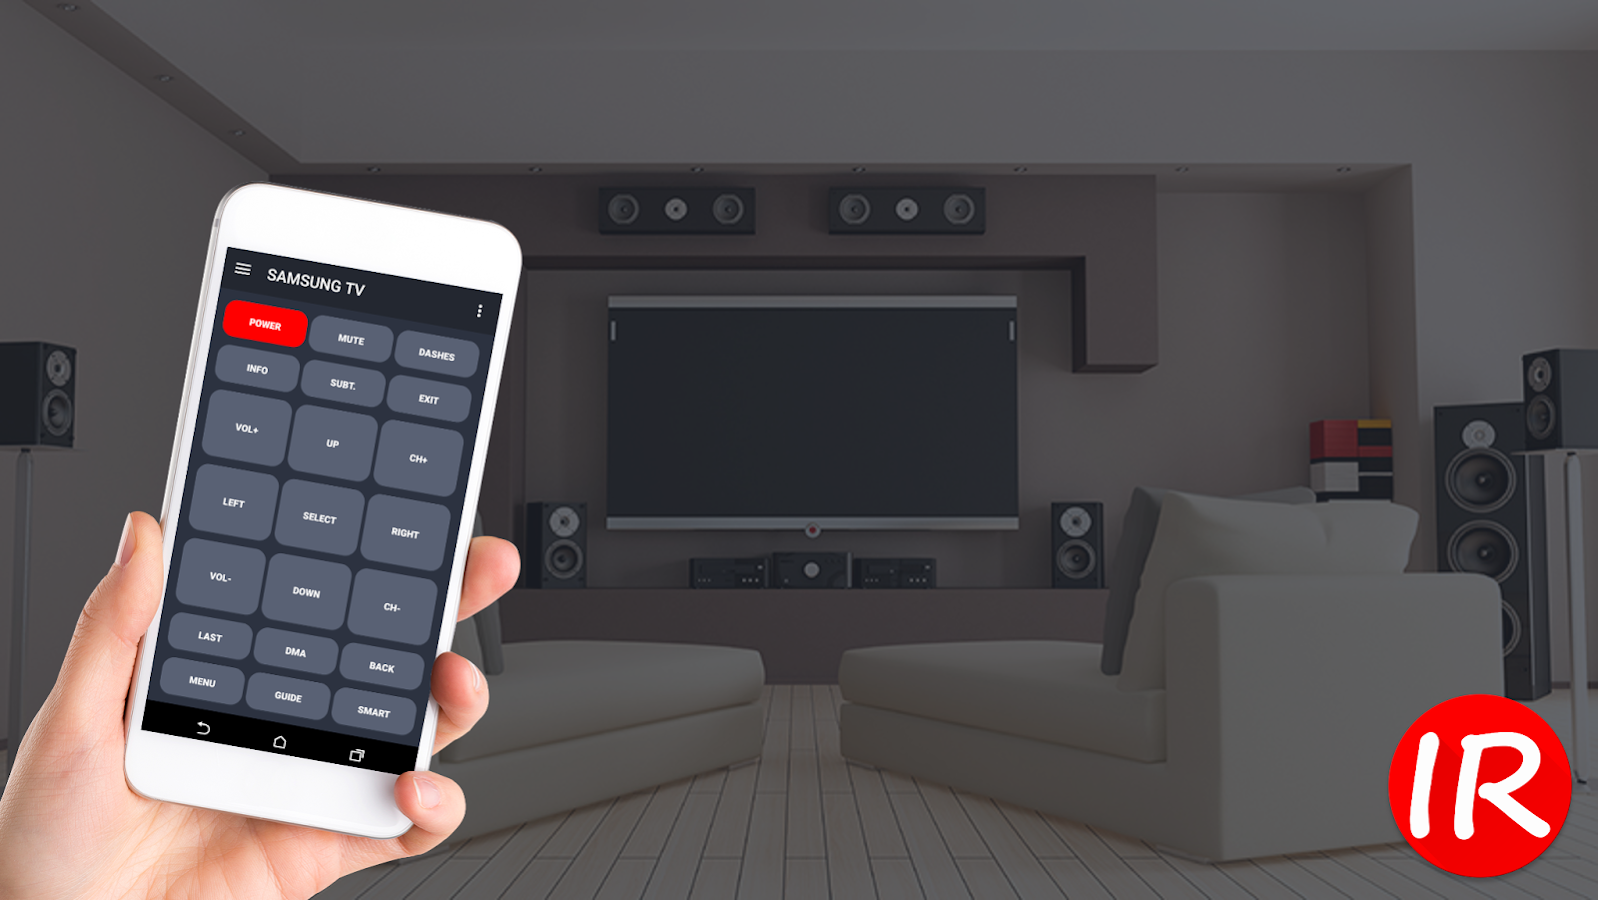 IR Universal Remote + WiFi Pro Screenshot 16